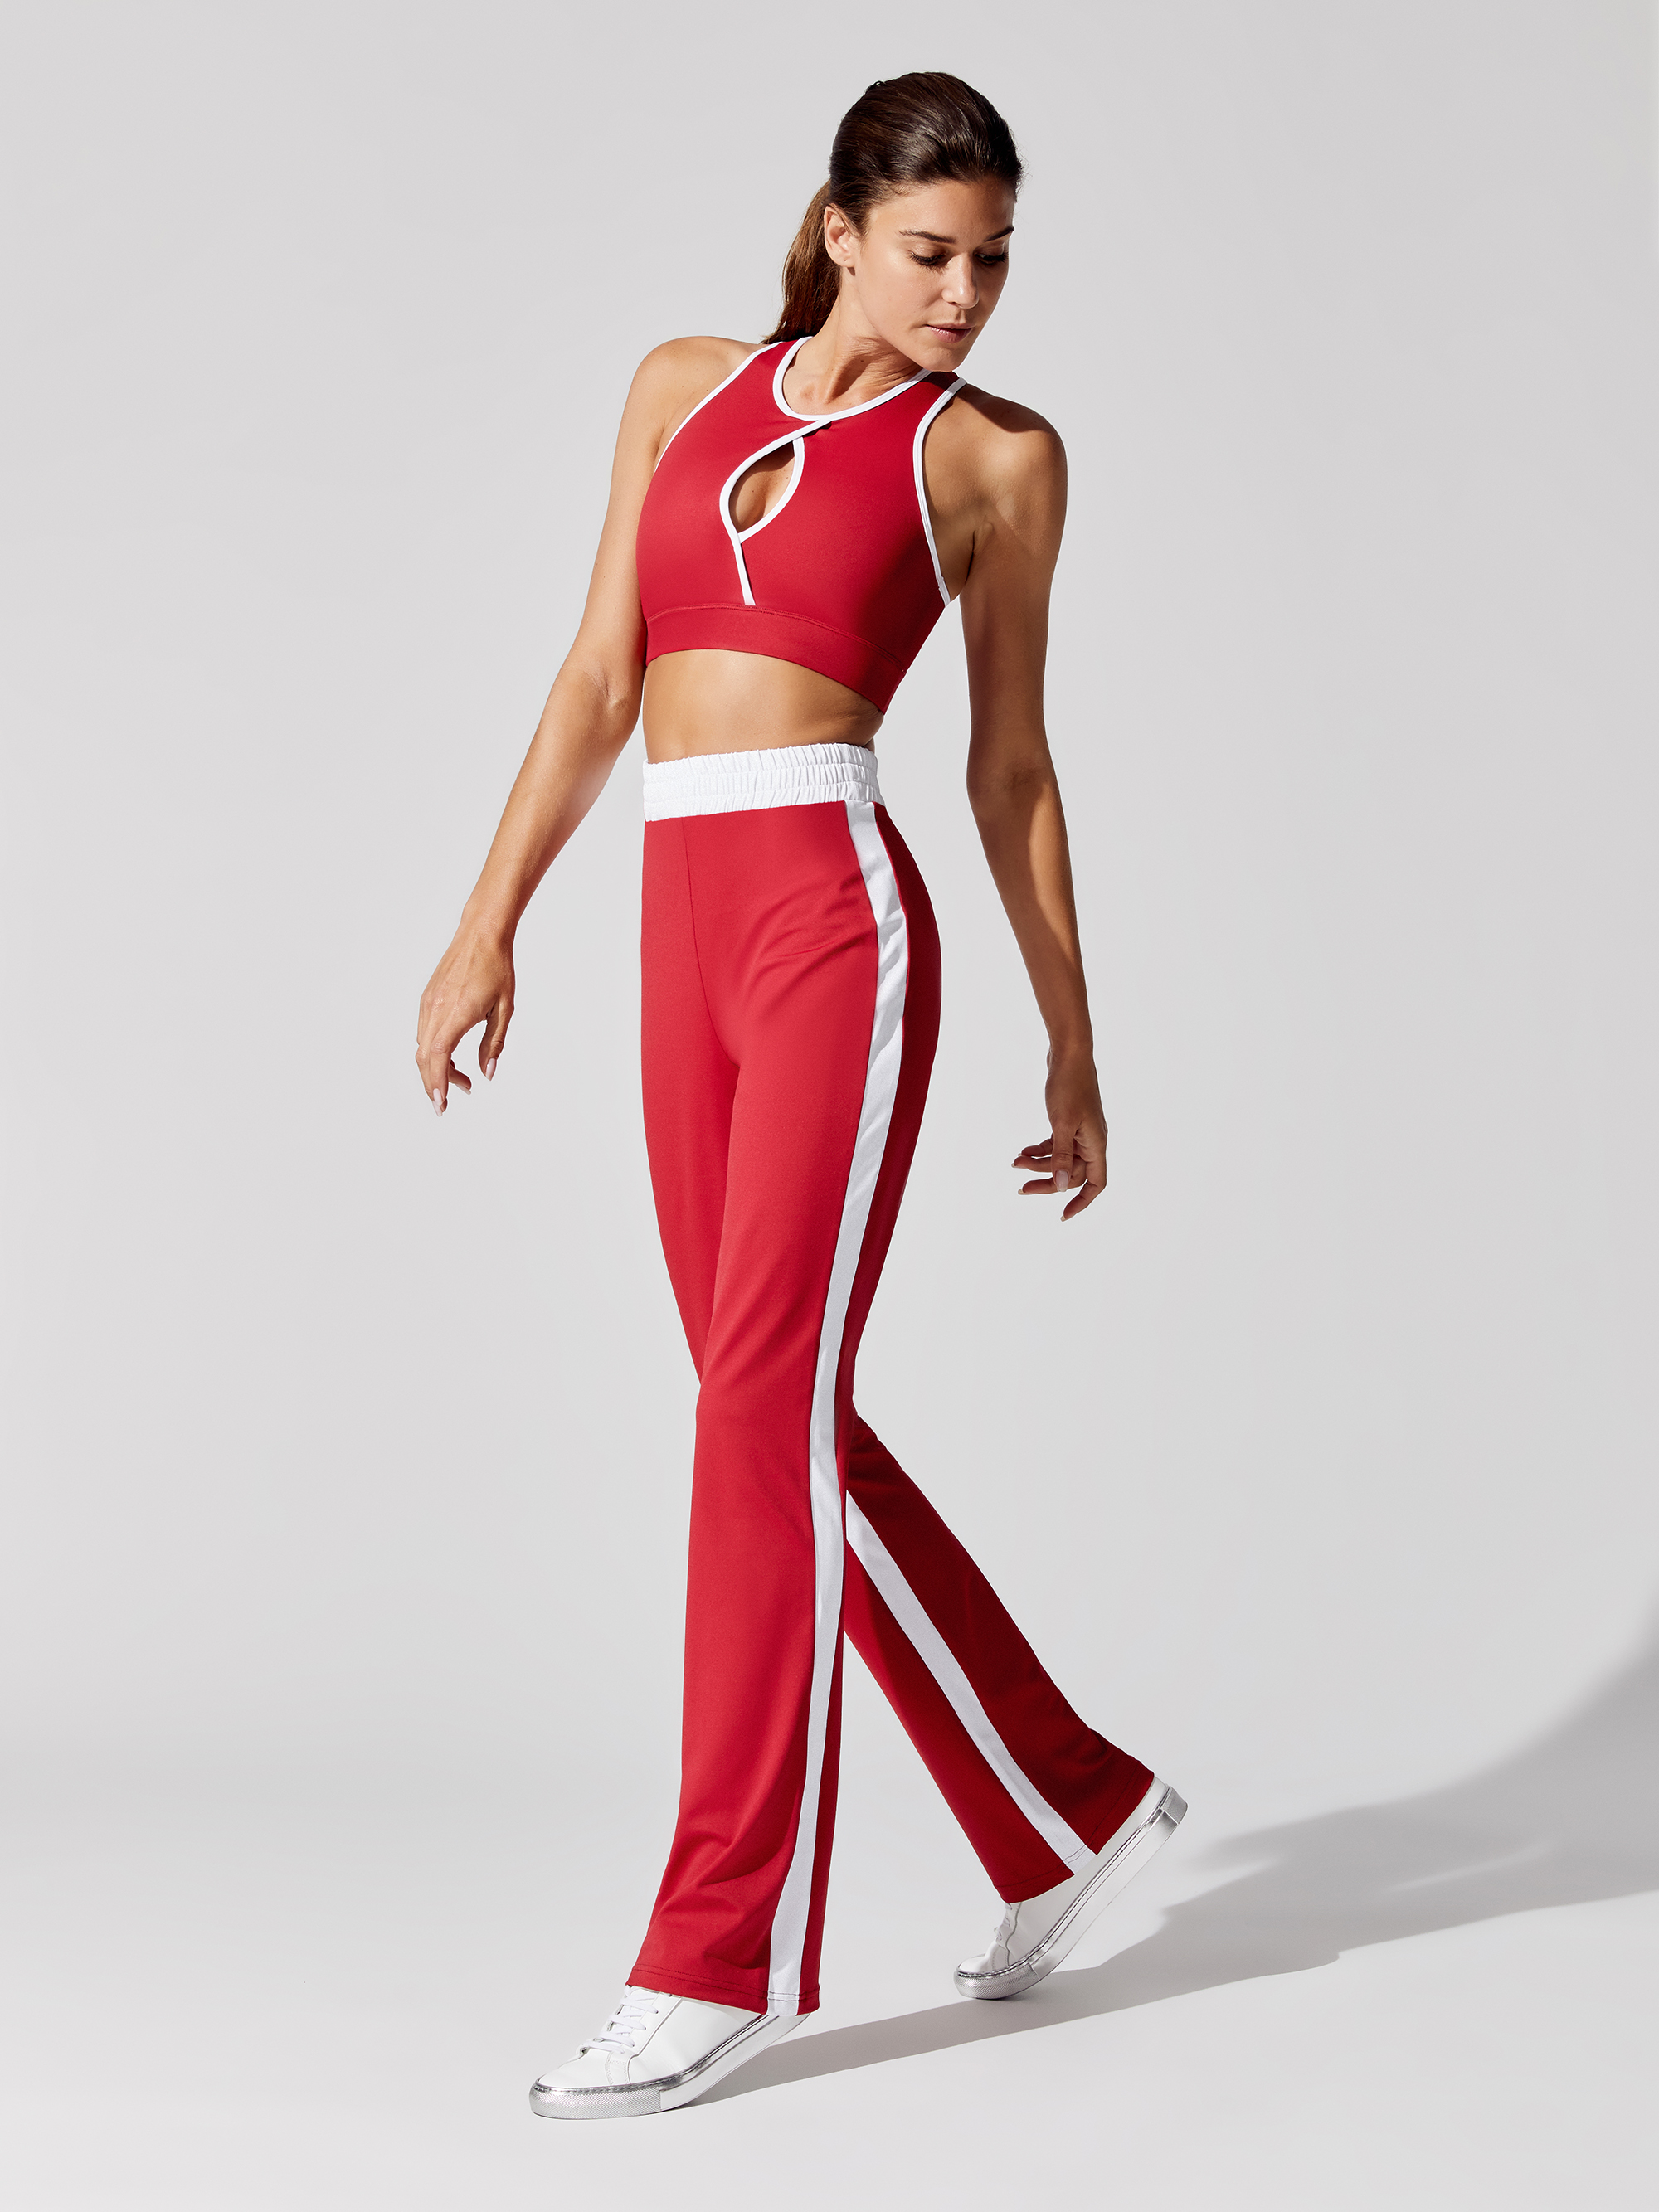 CARBON38-ATHLETIC-MESH-TROUSERS-BOTTOMS-CERISE-1-A.jpg